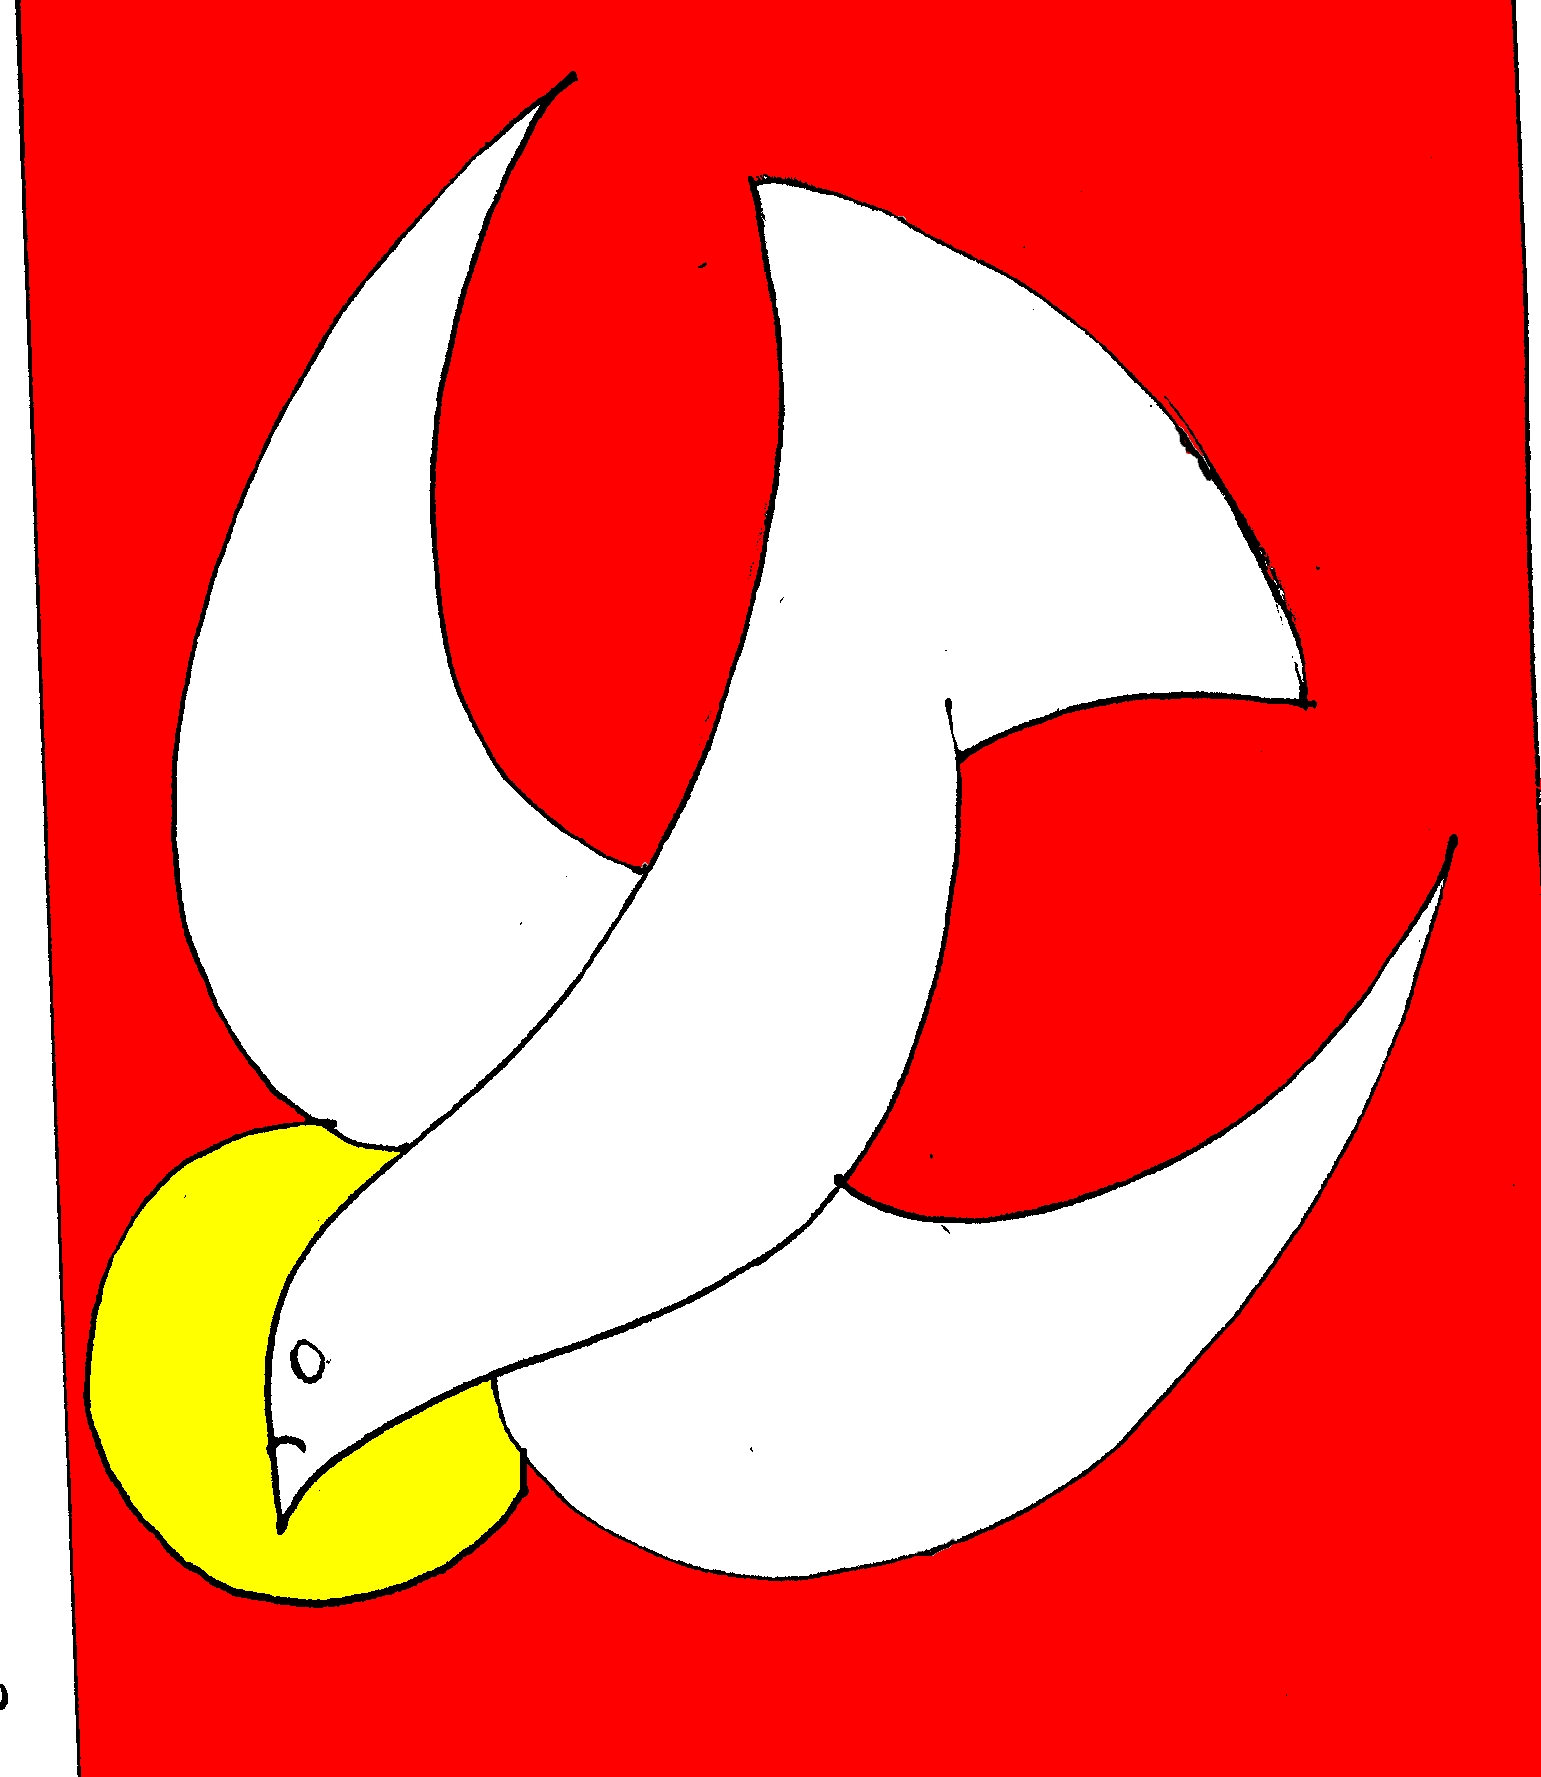 Holy Spirit as Dove on red background